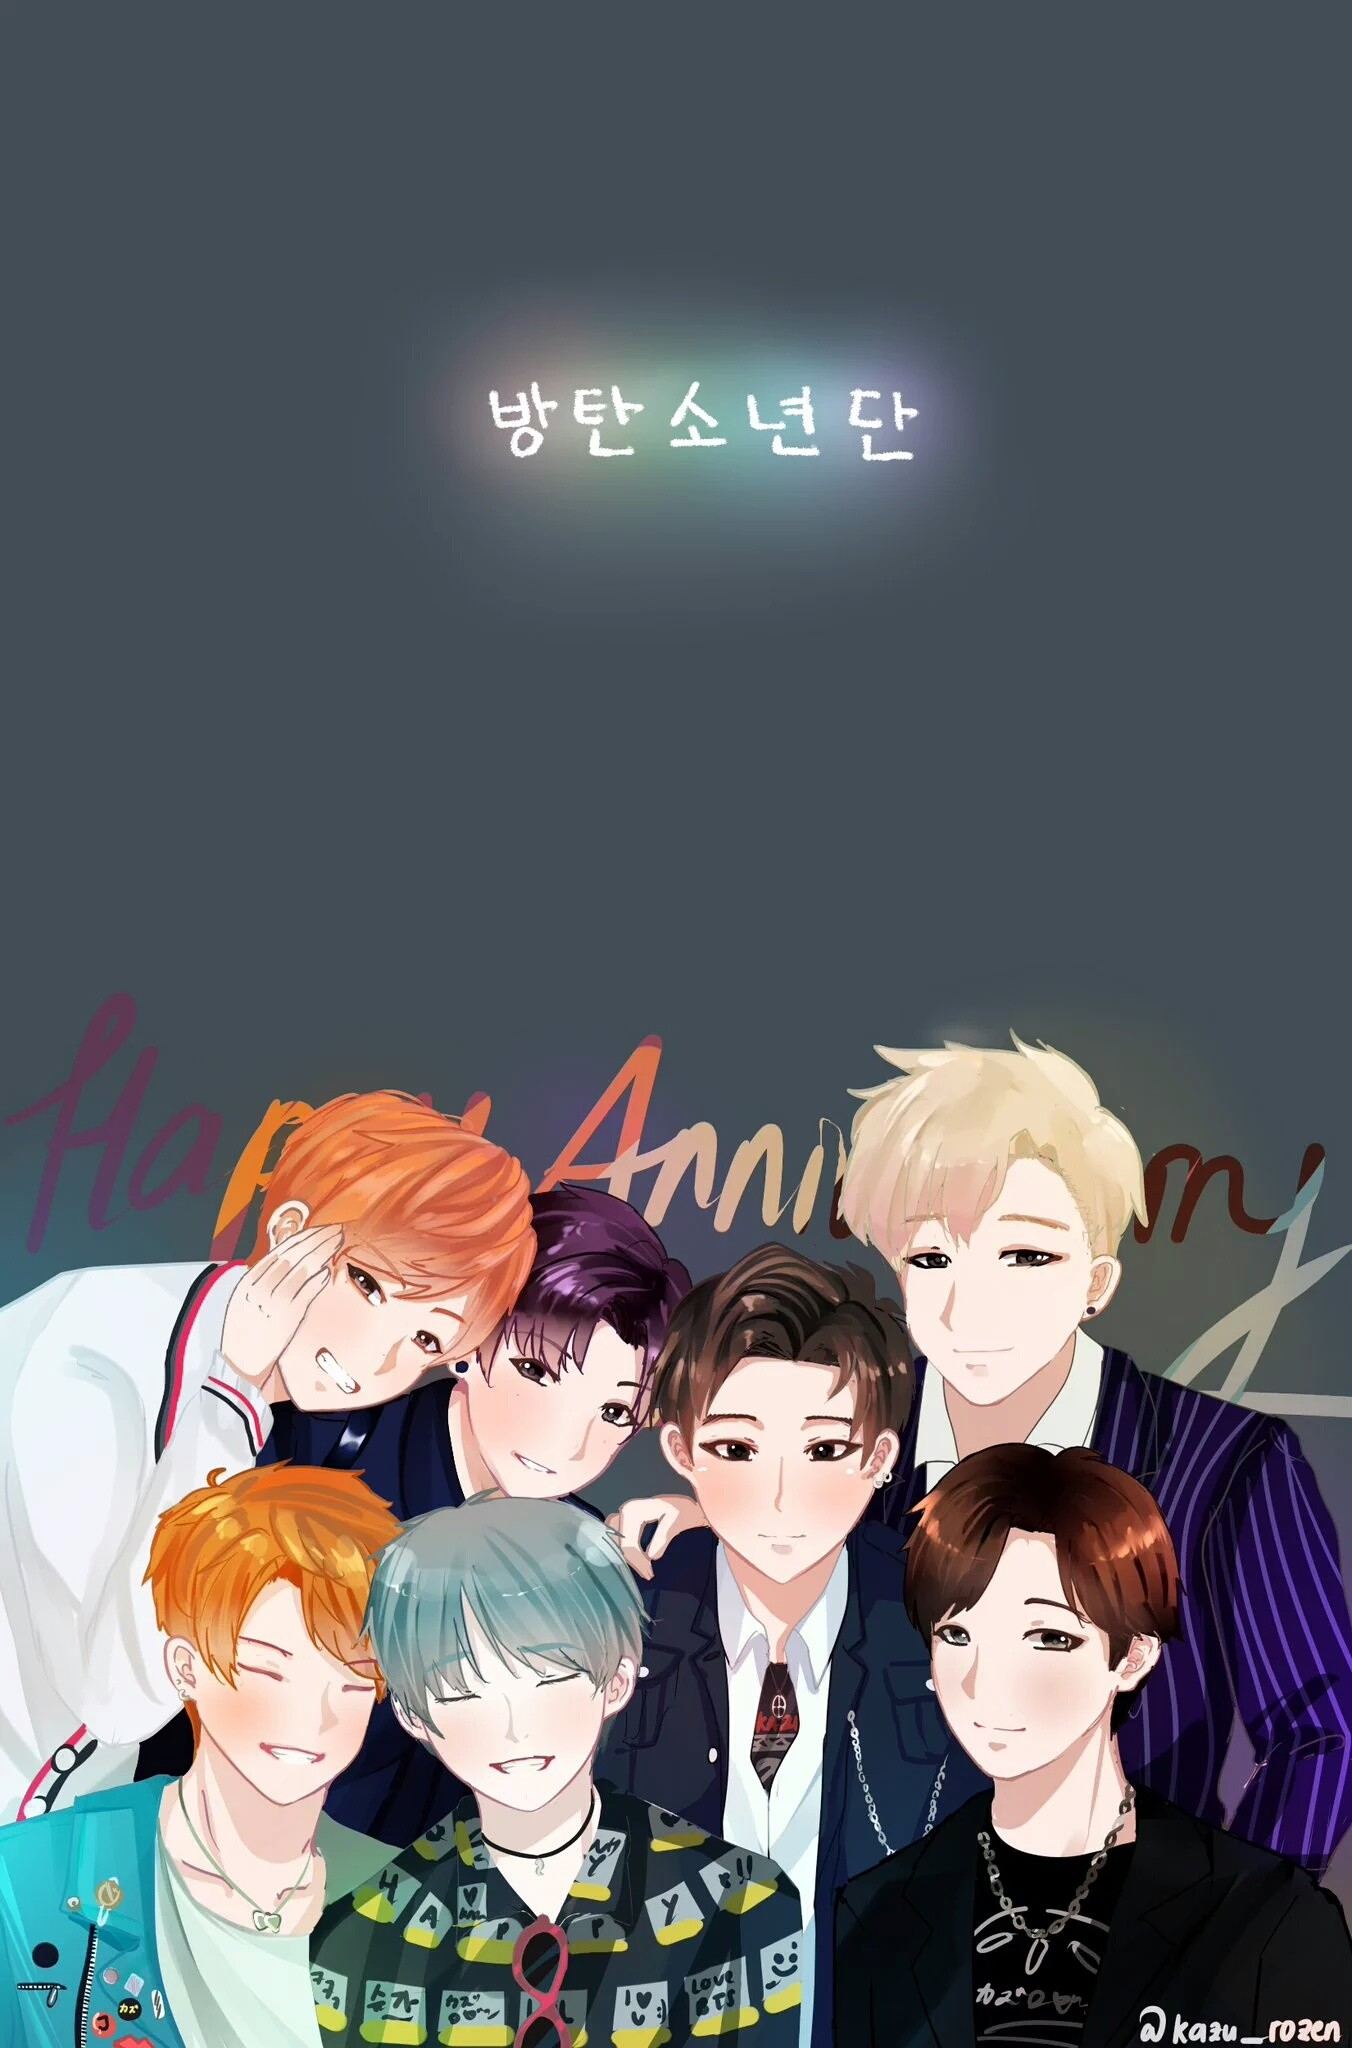 Bts Quotes Wallpaper Iphone Hd Bts Wallpaper 183 ① Download Free Beautiful High Resolution